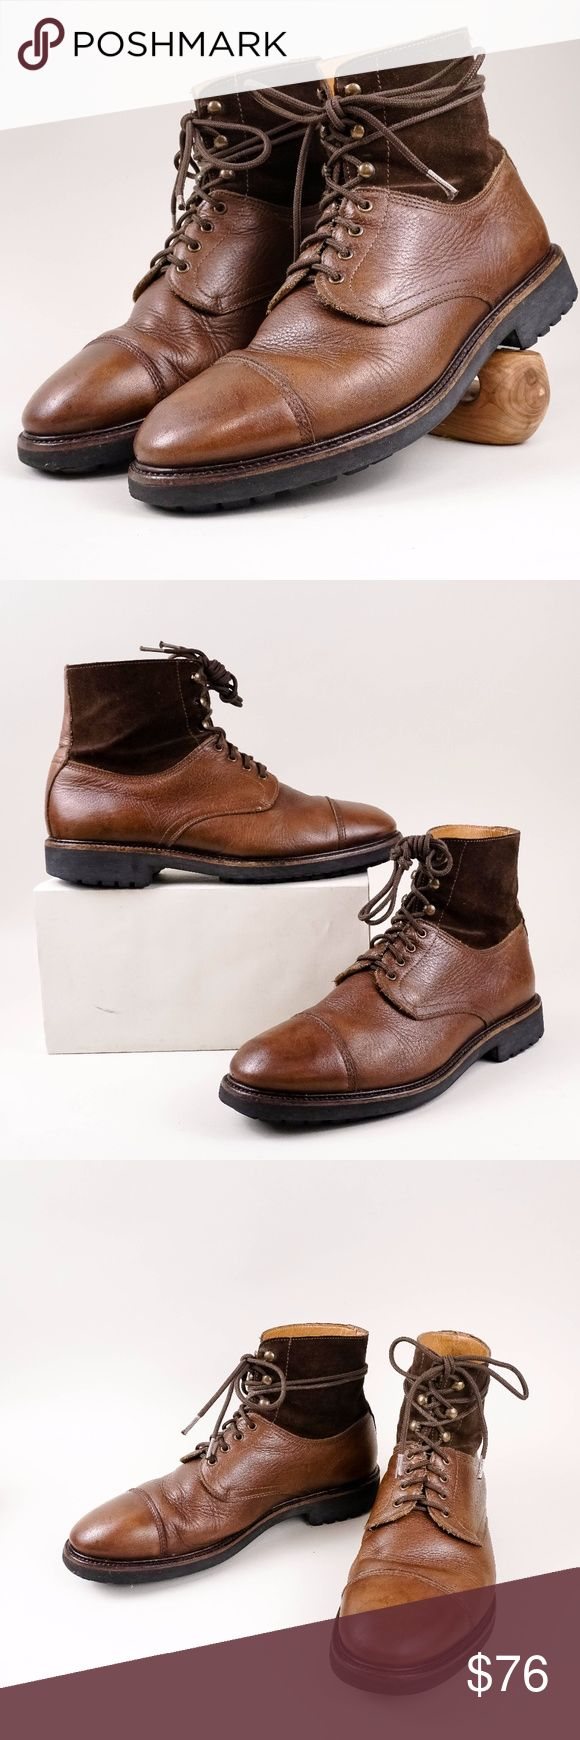 Hudson Cap toe Leather Suede rugged boots This item is gently used in excellent condition, Minor signs of wear. Please view all the pictures for condition details.  * Size: 42/ 8.5 * Color: brown H By Hudson Shoes Boots